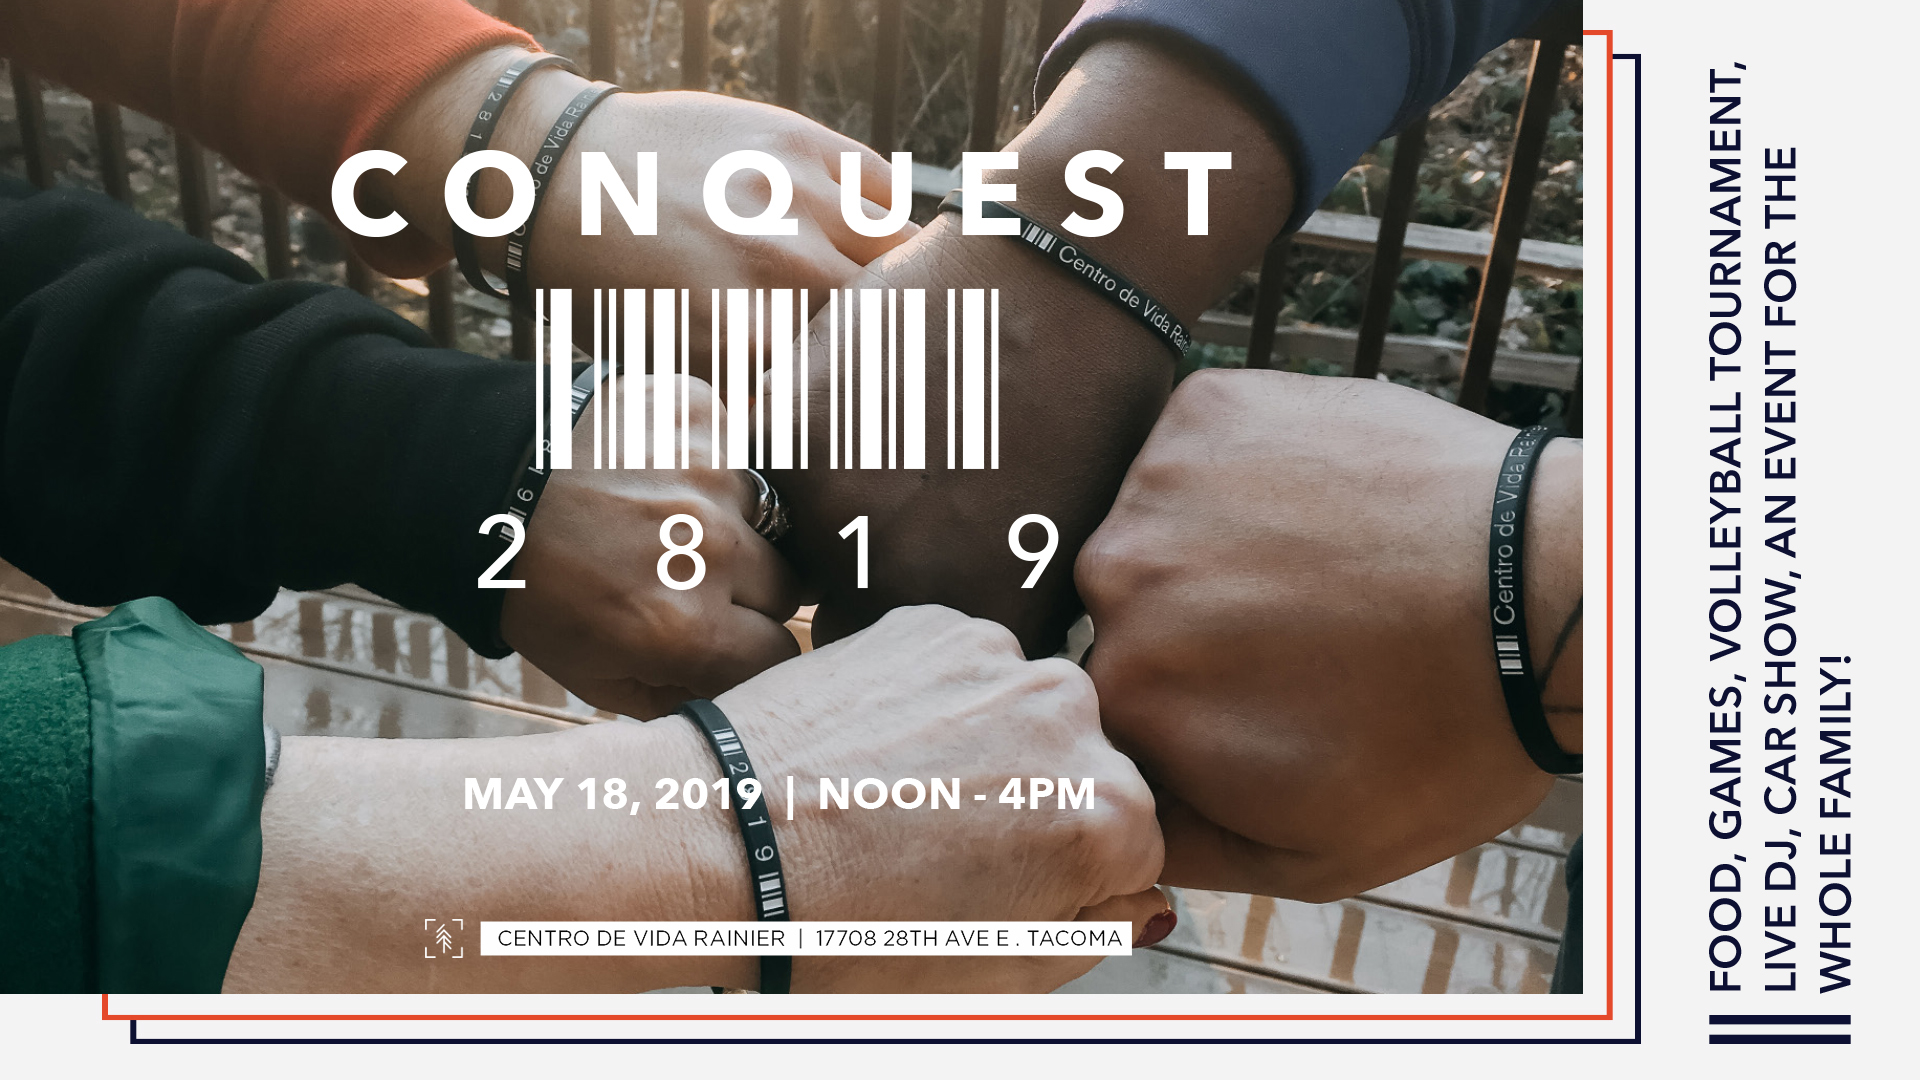 Life Center Rainier | Conquest 2819